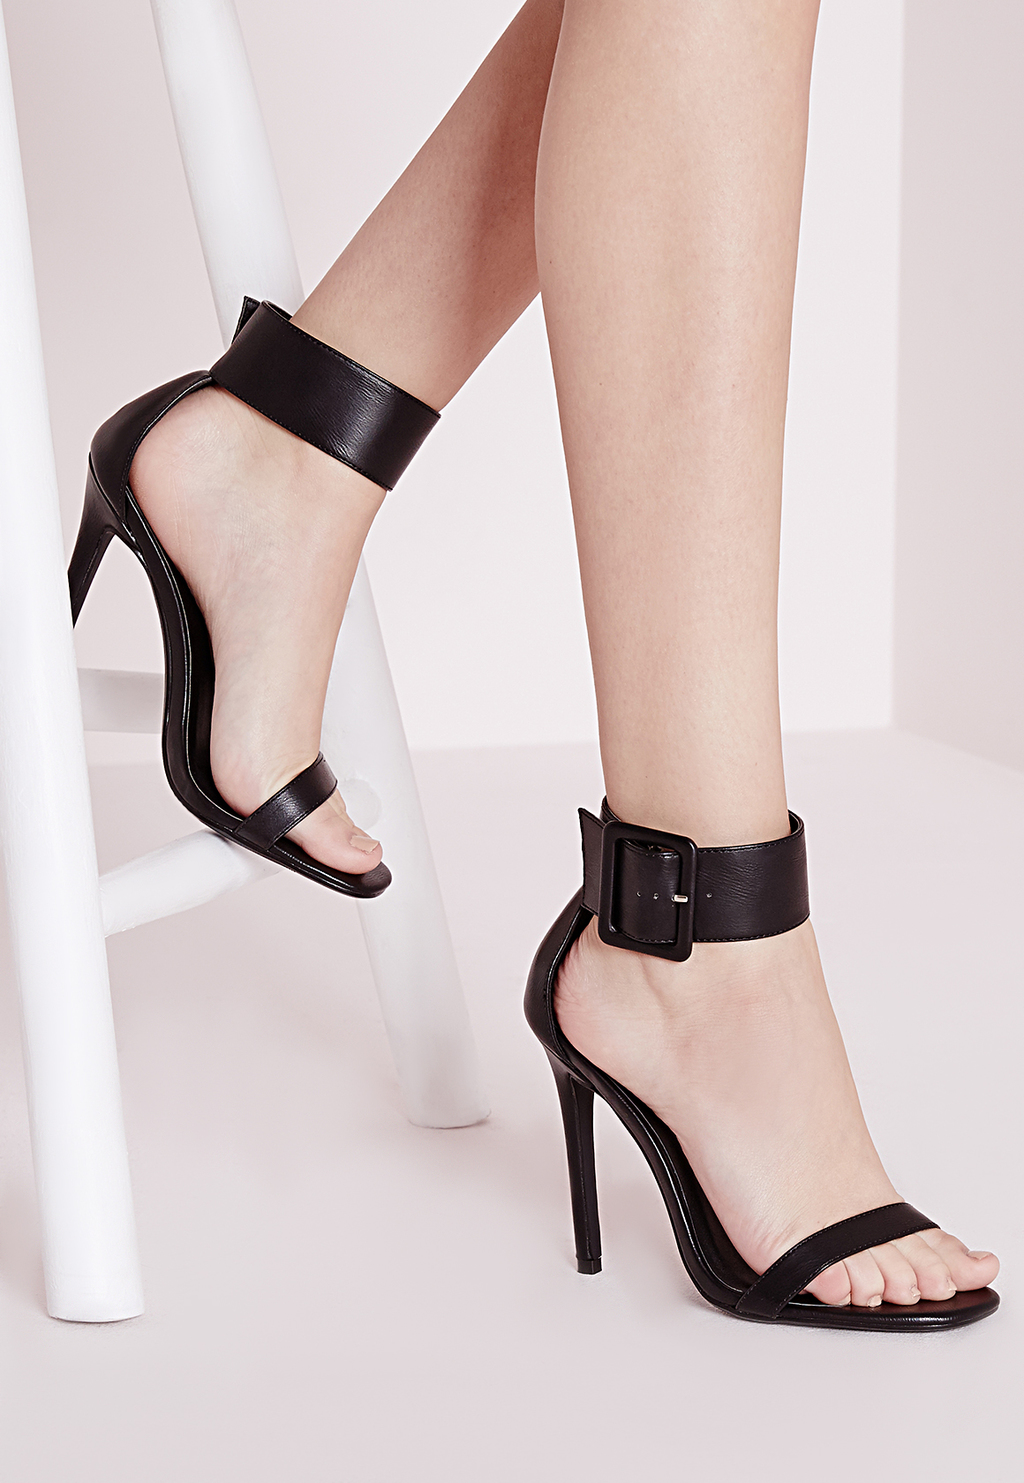 Buckle Trim Barely There Heeled Sandals Black, Black - predominant colour: black; occasions: evening, occasion; material: faux leather; heel height: high; embellishment: buckles; ankle detail: ankle strap; heel: stiletto; toe: open toe/peeptoe; style: standard; finish: plain; pattern: plain; season: s/s 2016